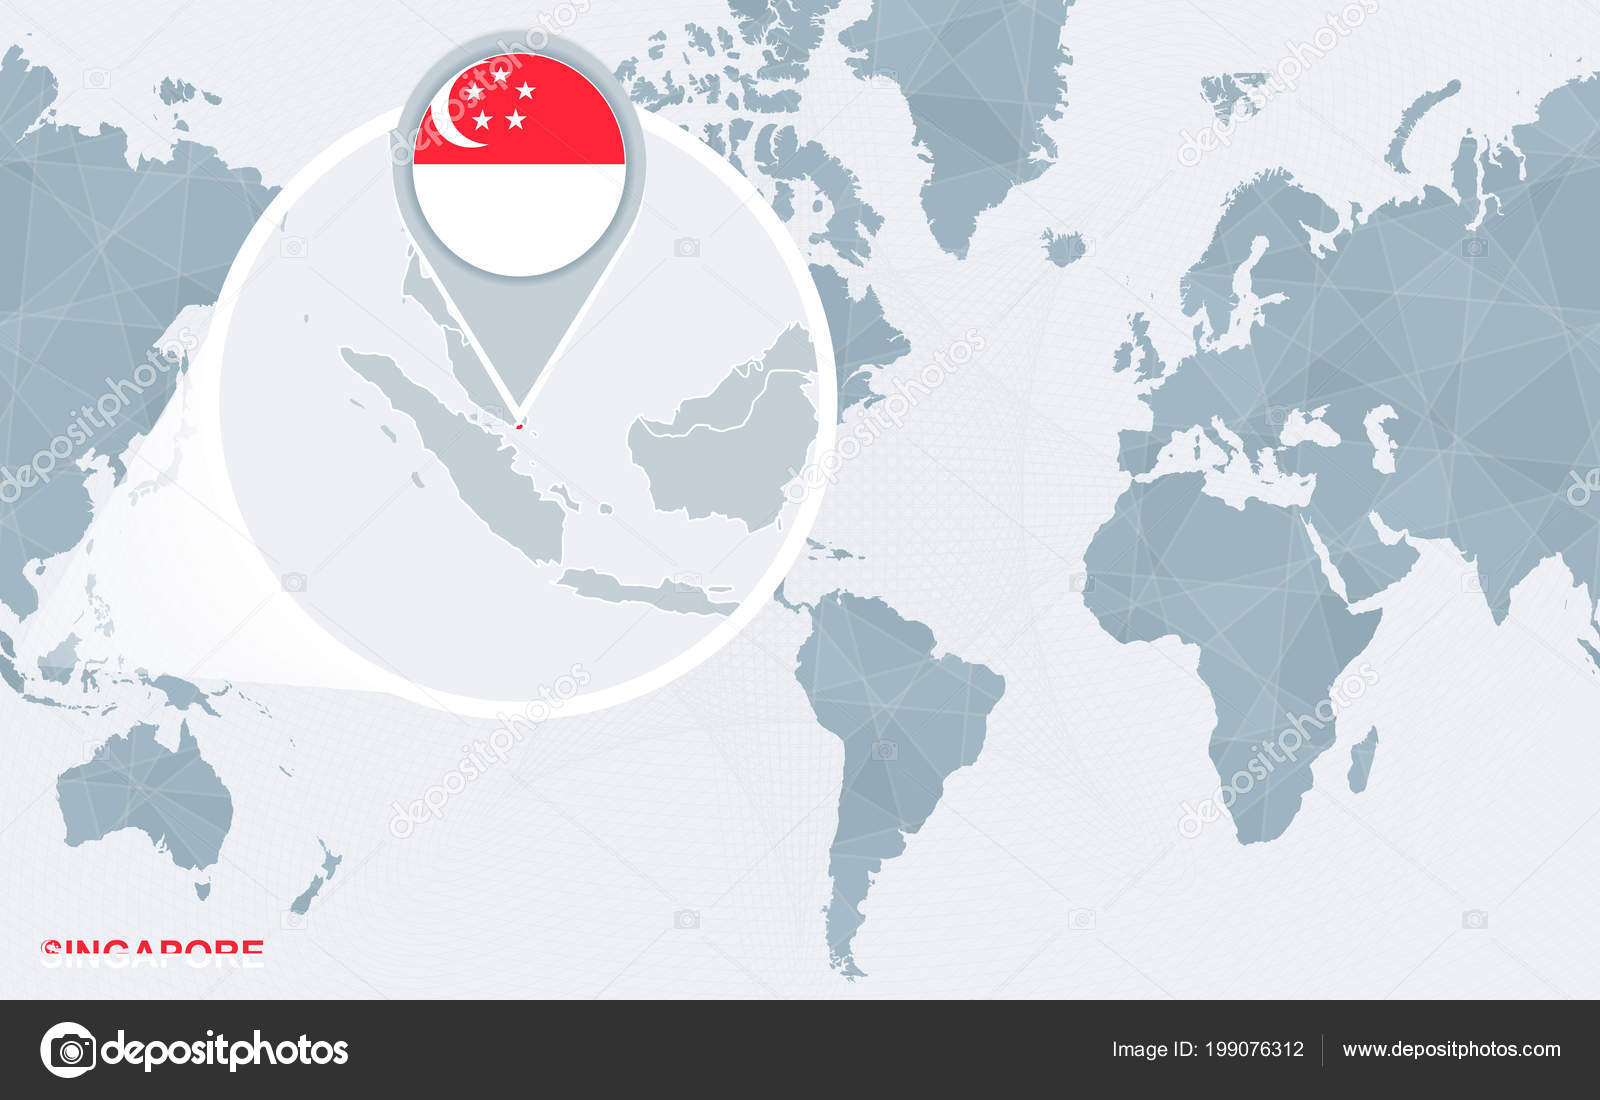 World Map Centered America Magnified Singapore Blue Flag Map